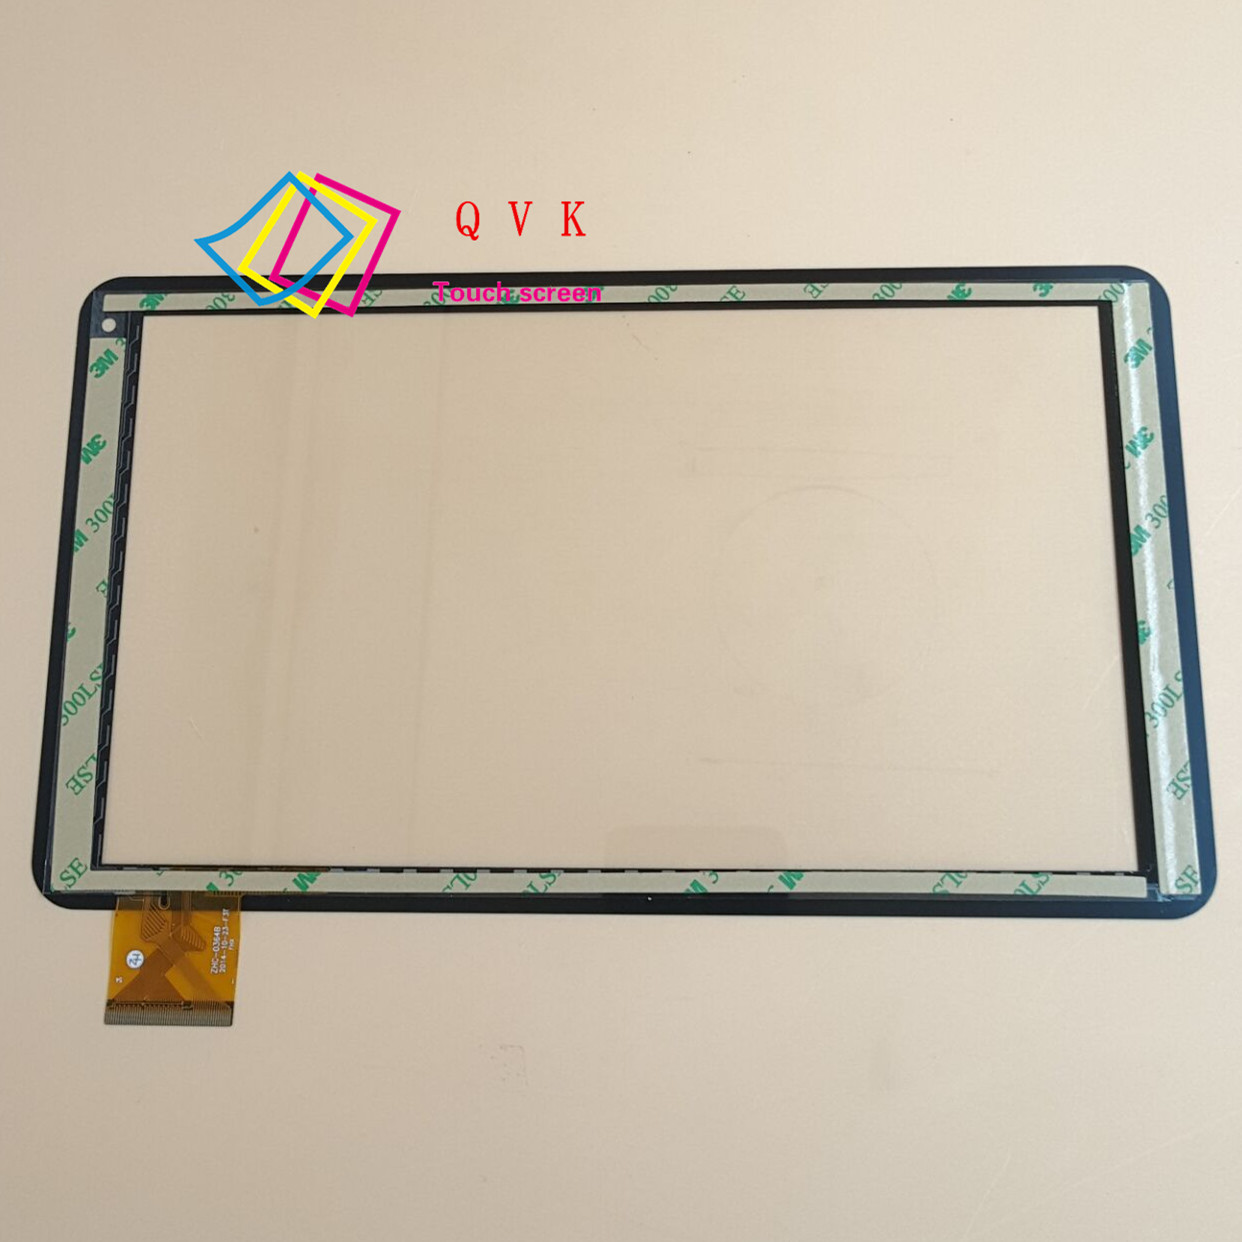 10.1 inch for WOXTER QX 105 QX105 Tablet touch capacitance screen outside UK101016G-01_Fpc V0.1 ZHC-0364B